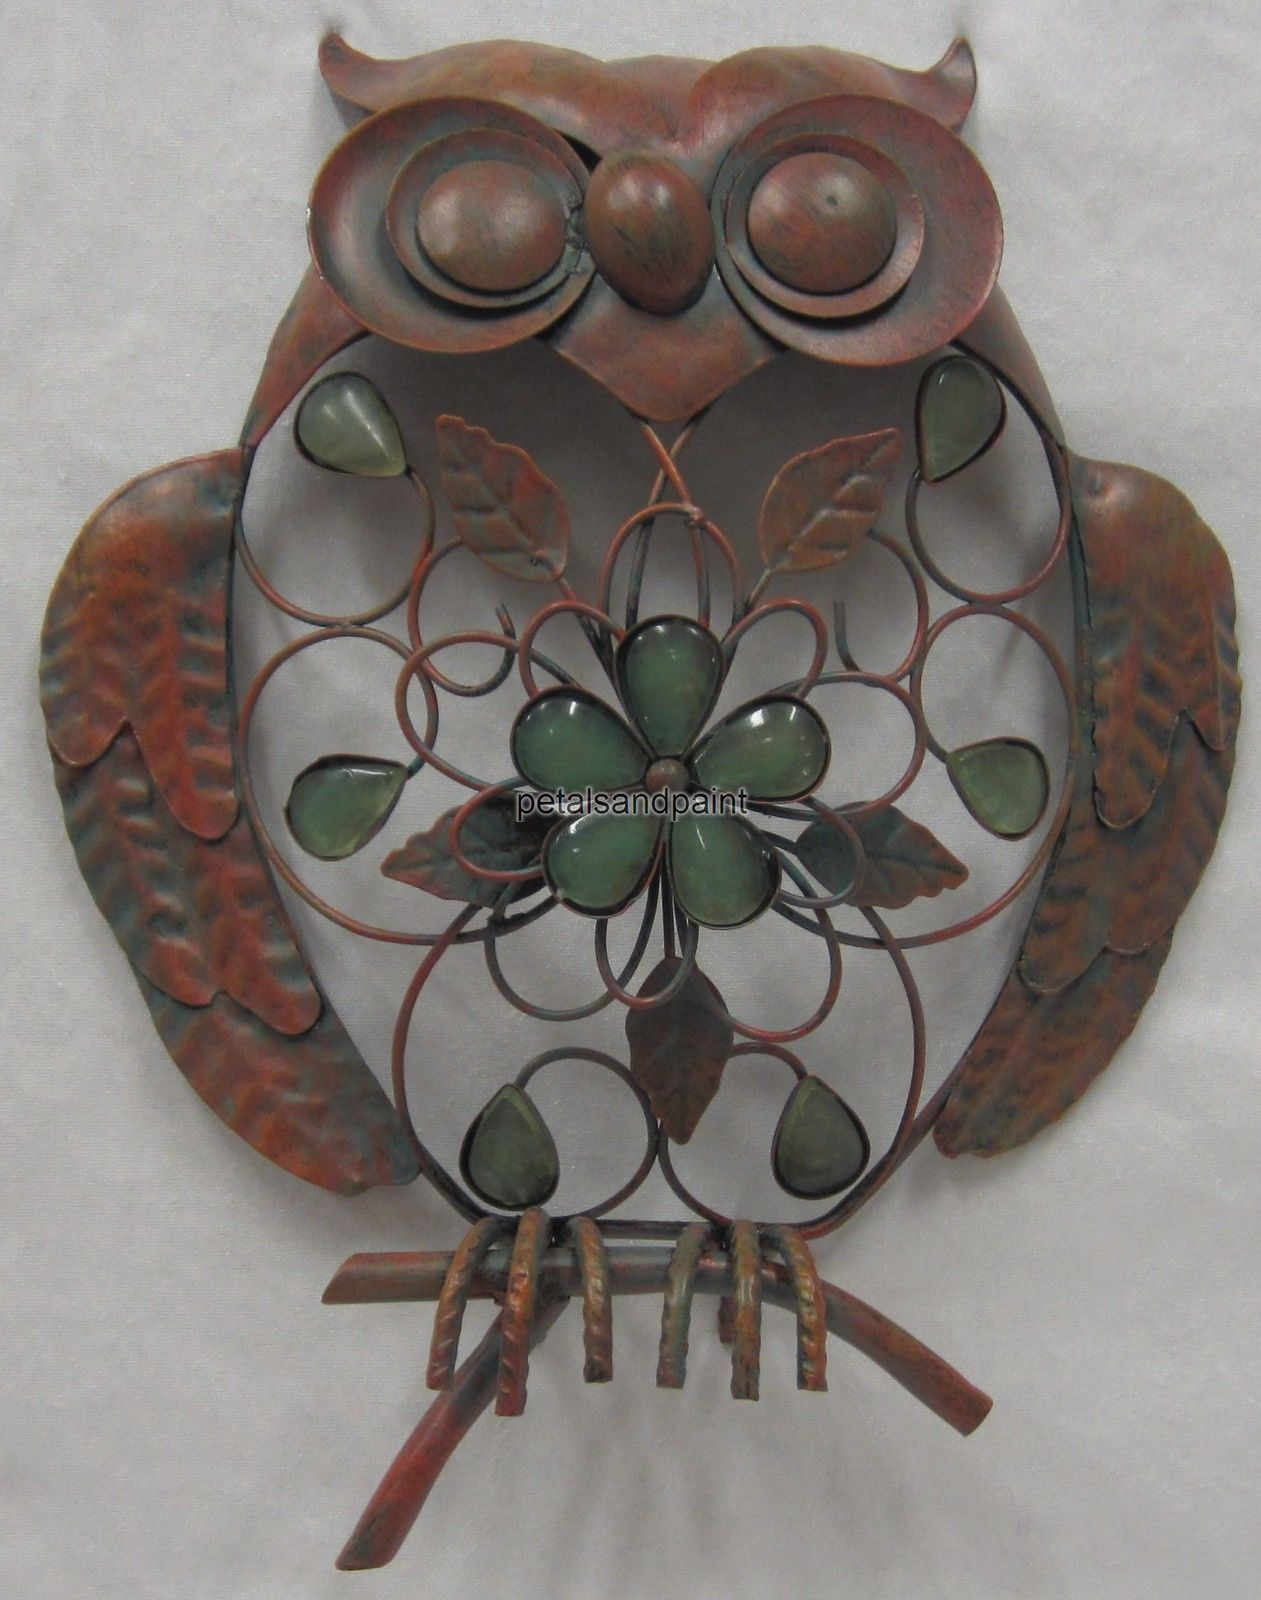 Metal Owl Wall Decor details about 32 x 26cm metal owl wall decor ornament rustic